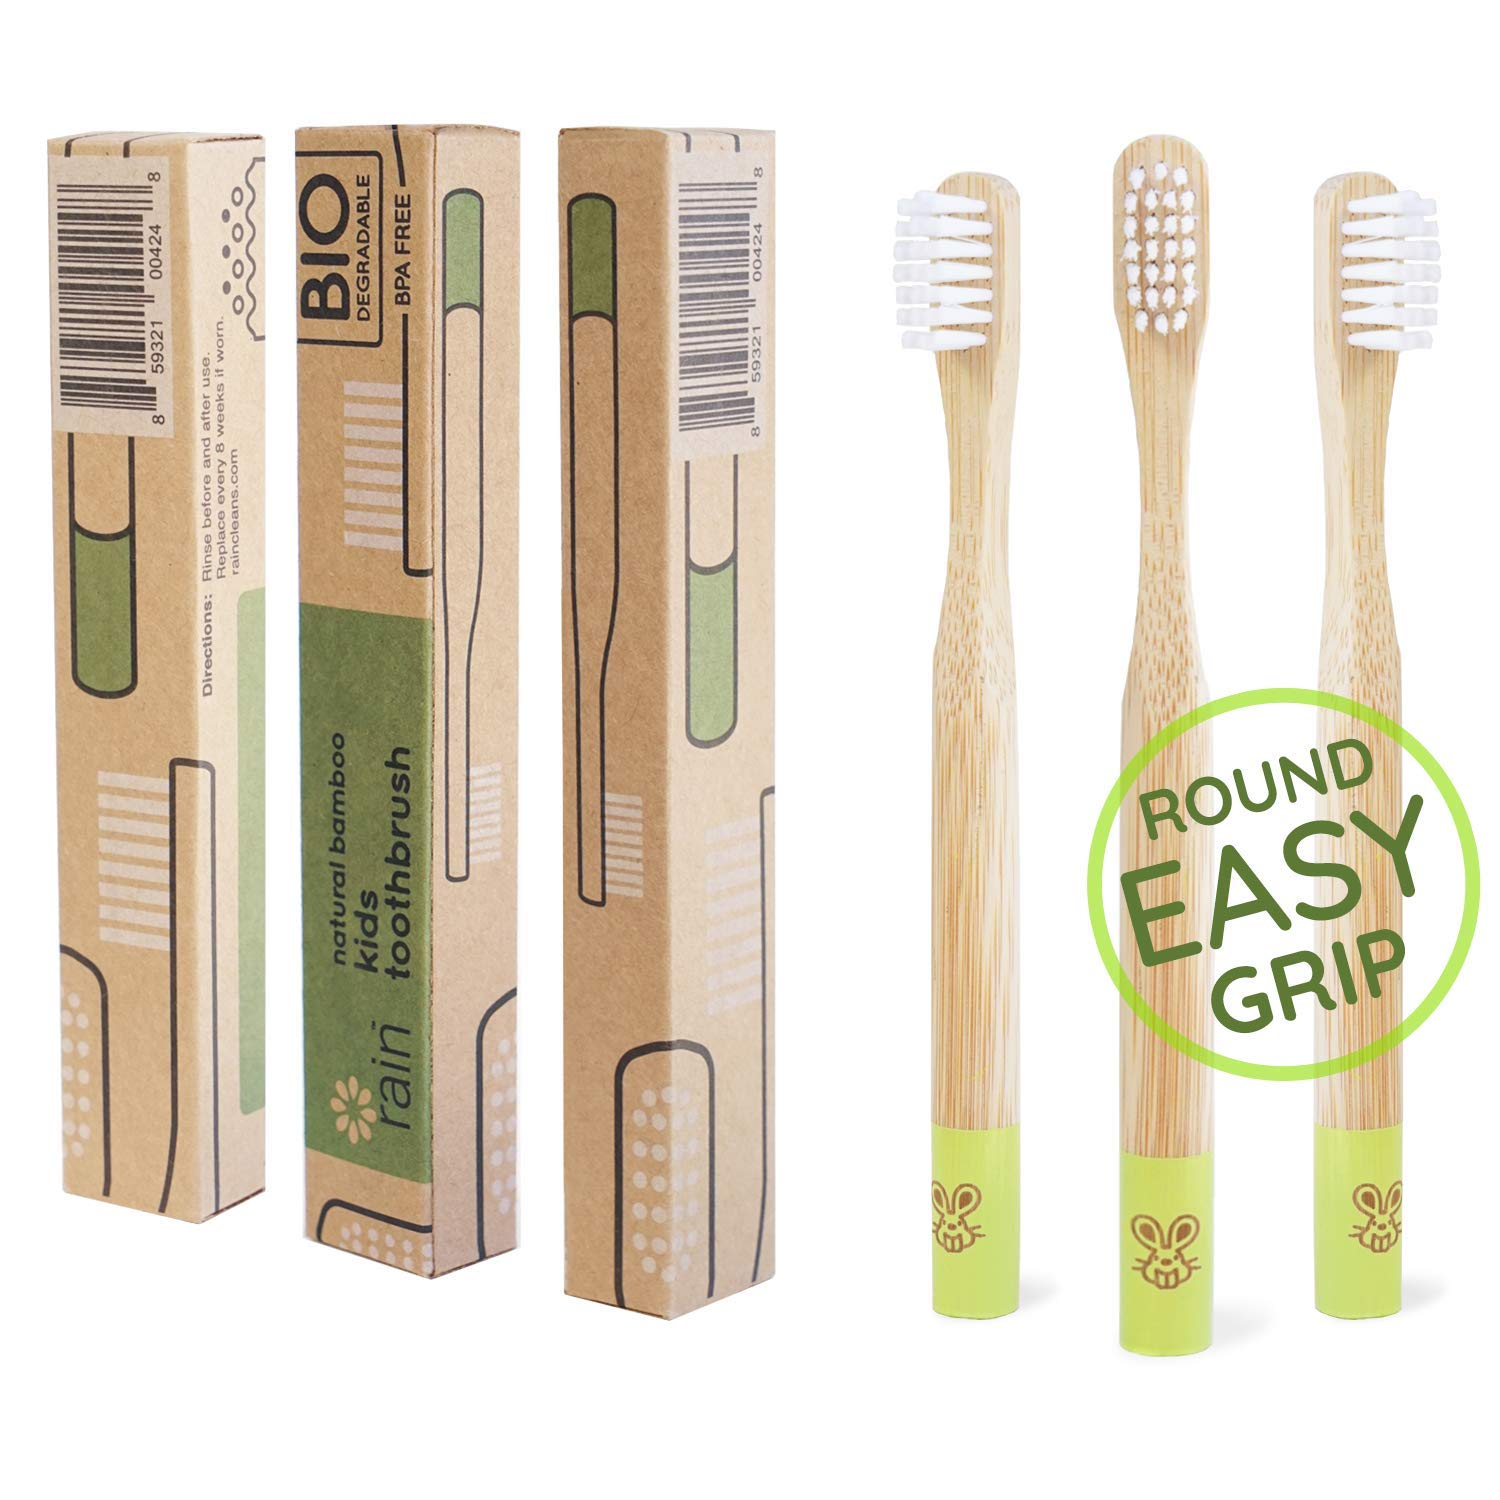 Rain Organic Bamboo Baby Toothbrush - 100% Safe Infant Toddler Kids Toothbrush 6 to 12 Months and Up, Natural BPA-Free Biodegradable Wood Toothbrush Extra Soft Bristles Children's Dental Care (3 Pack)